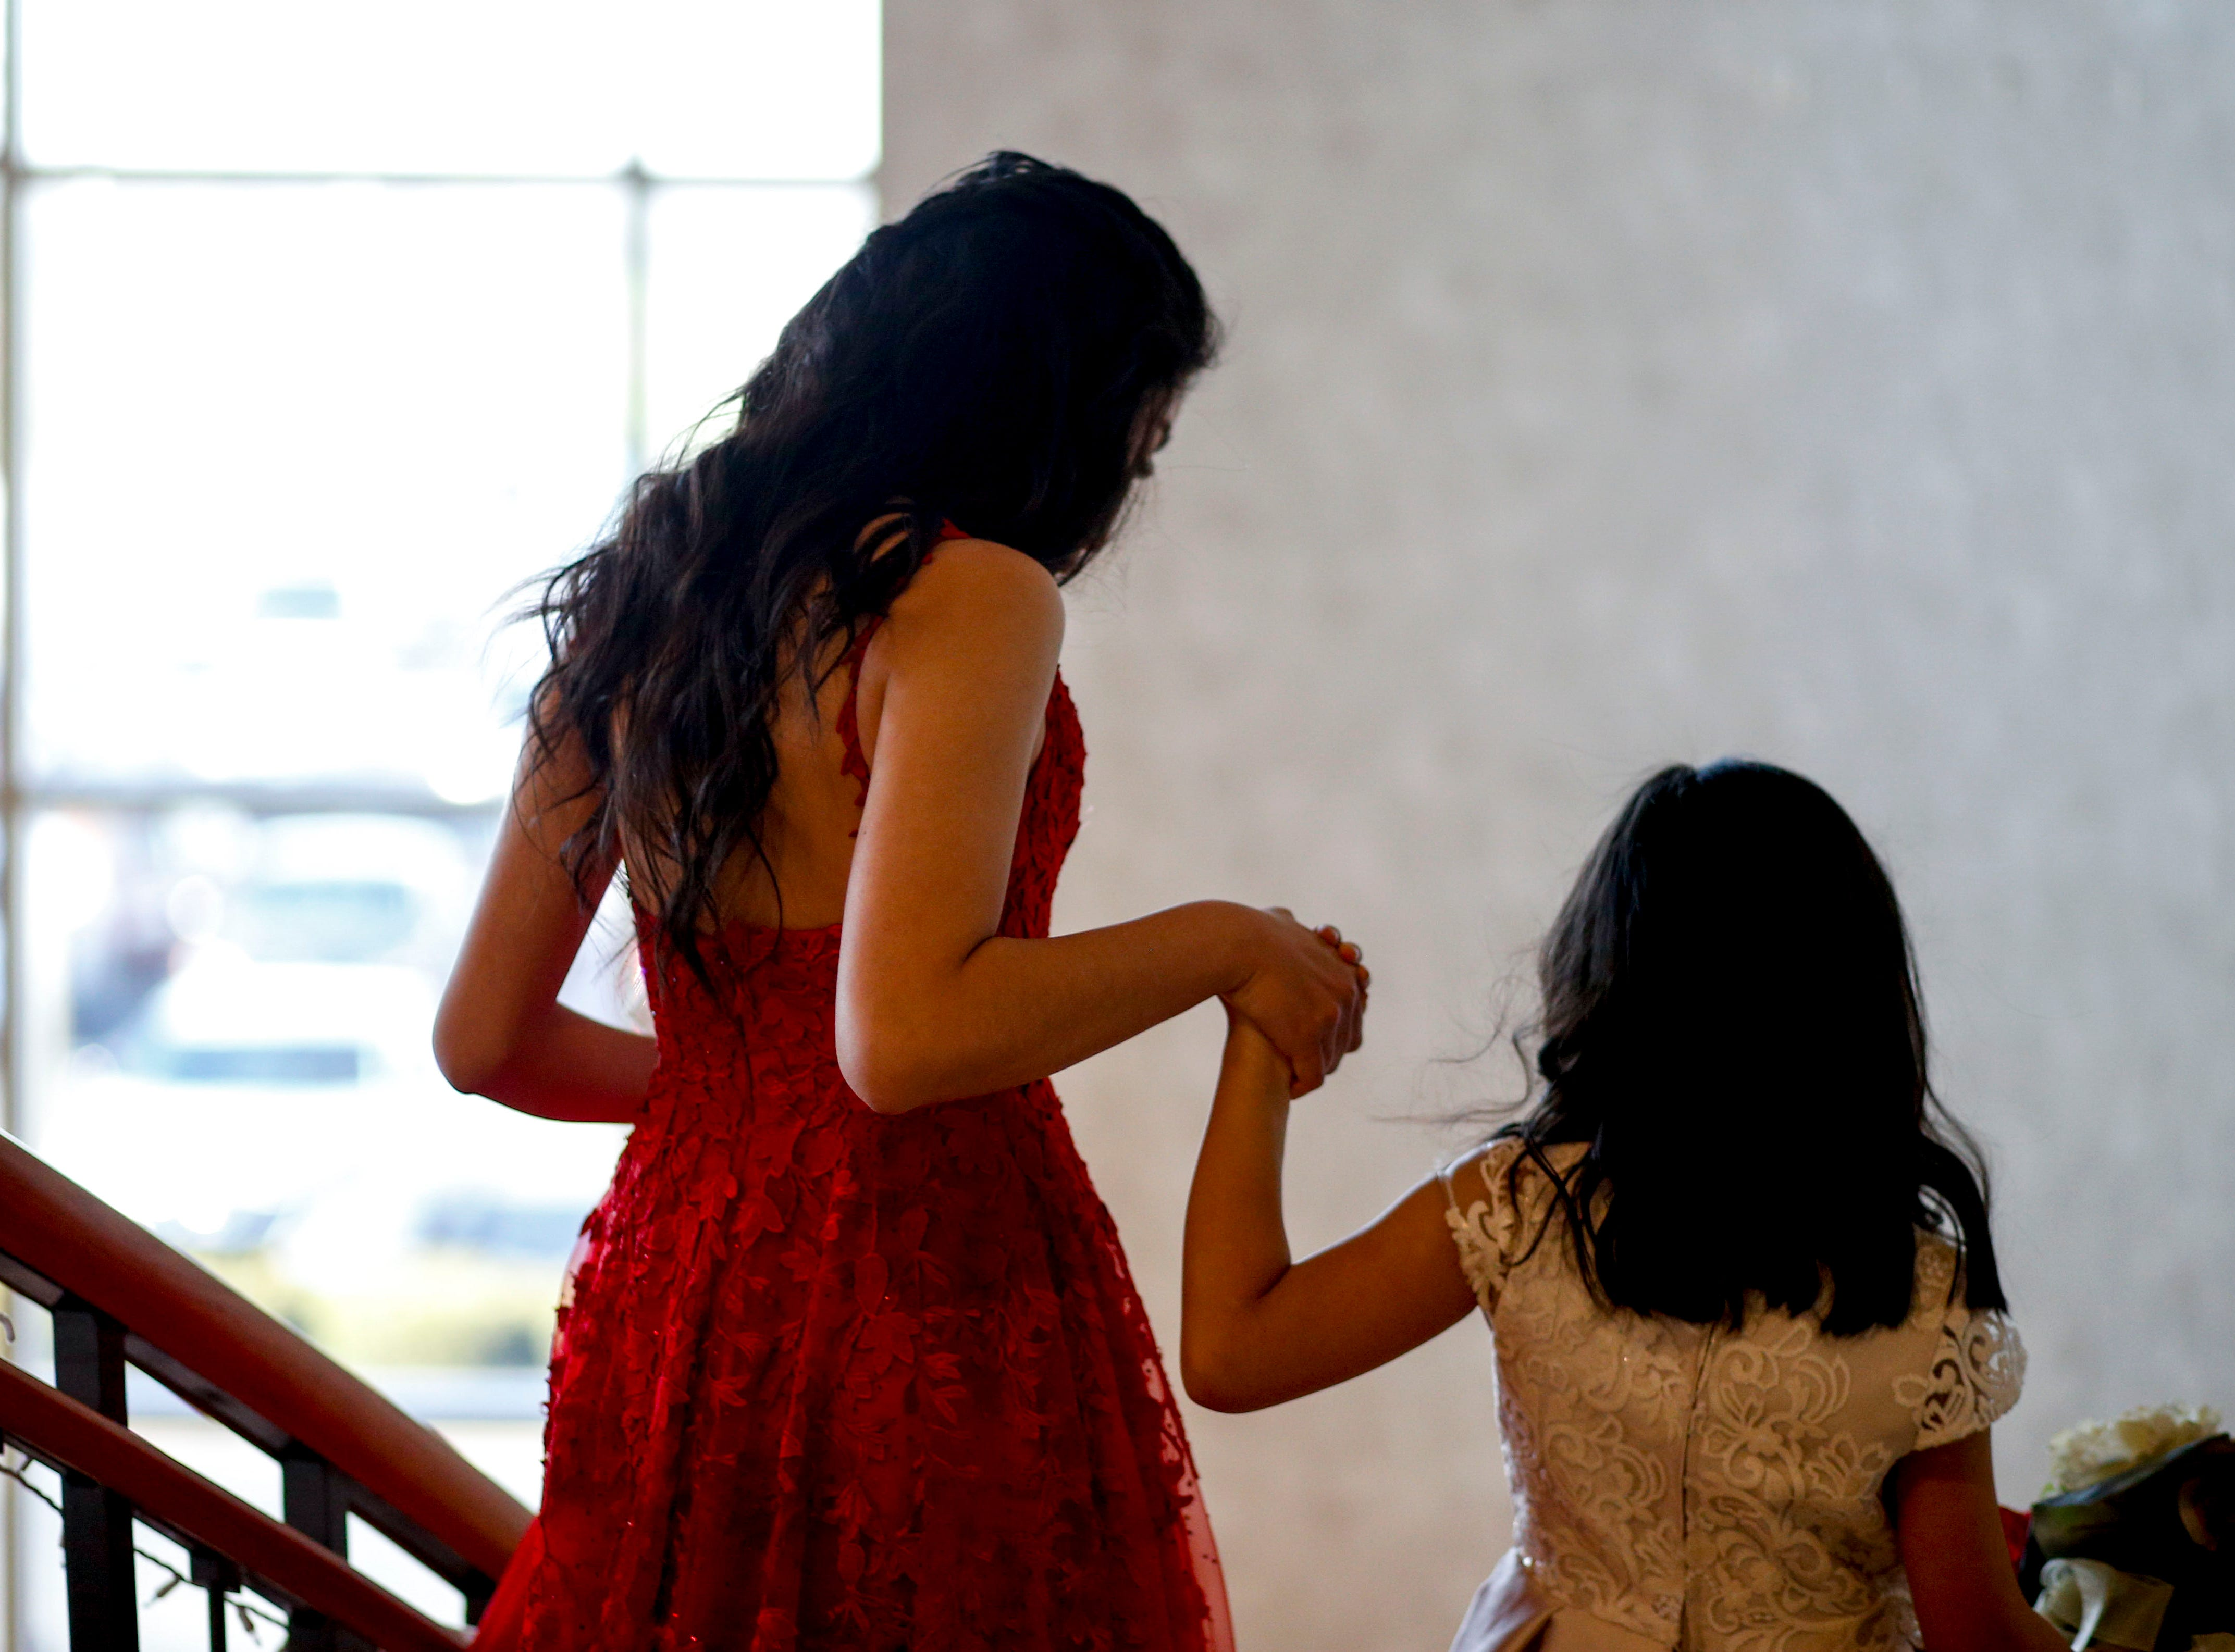 A student is escorted down the staircase in front of friends and family during Clarksville Academy's 2019 prom at The Bruce Convention Center in Hopkinsville, Ky., on Saturday, April 6, 2019.